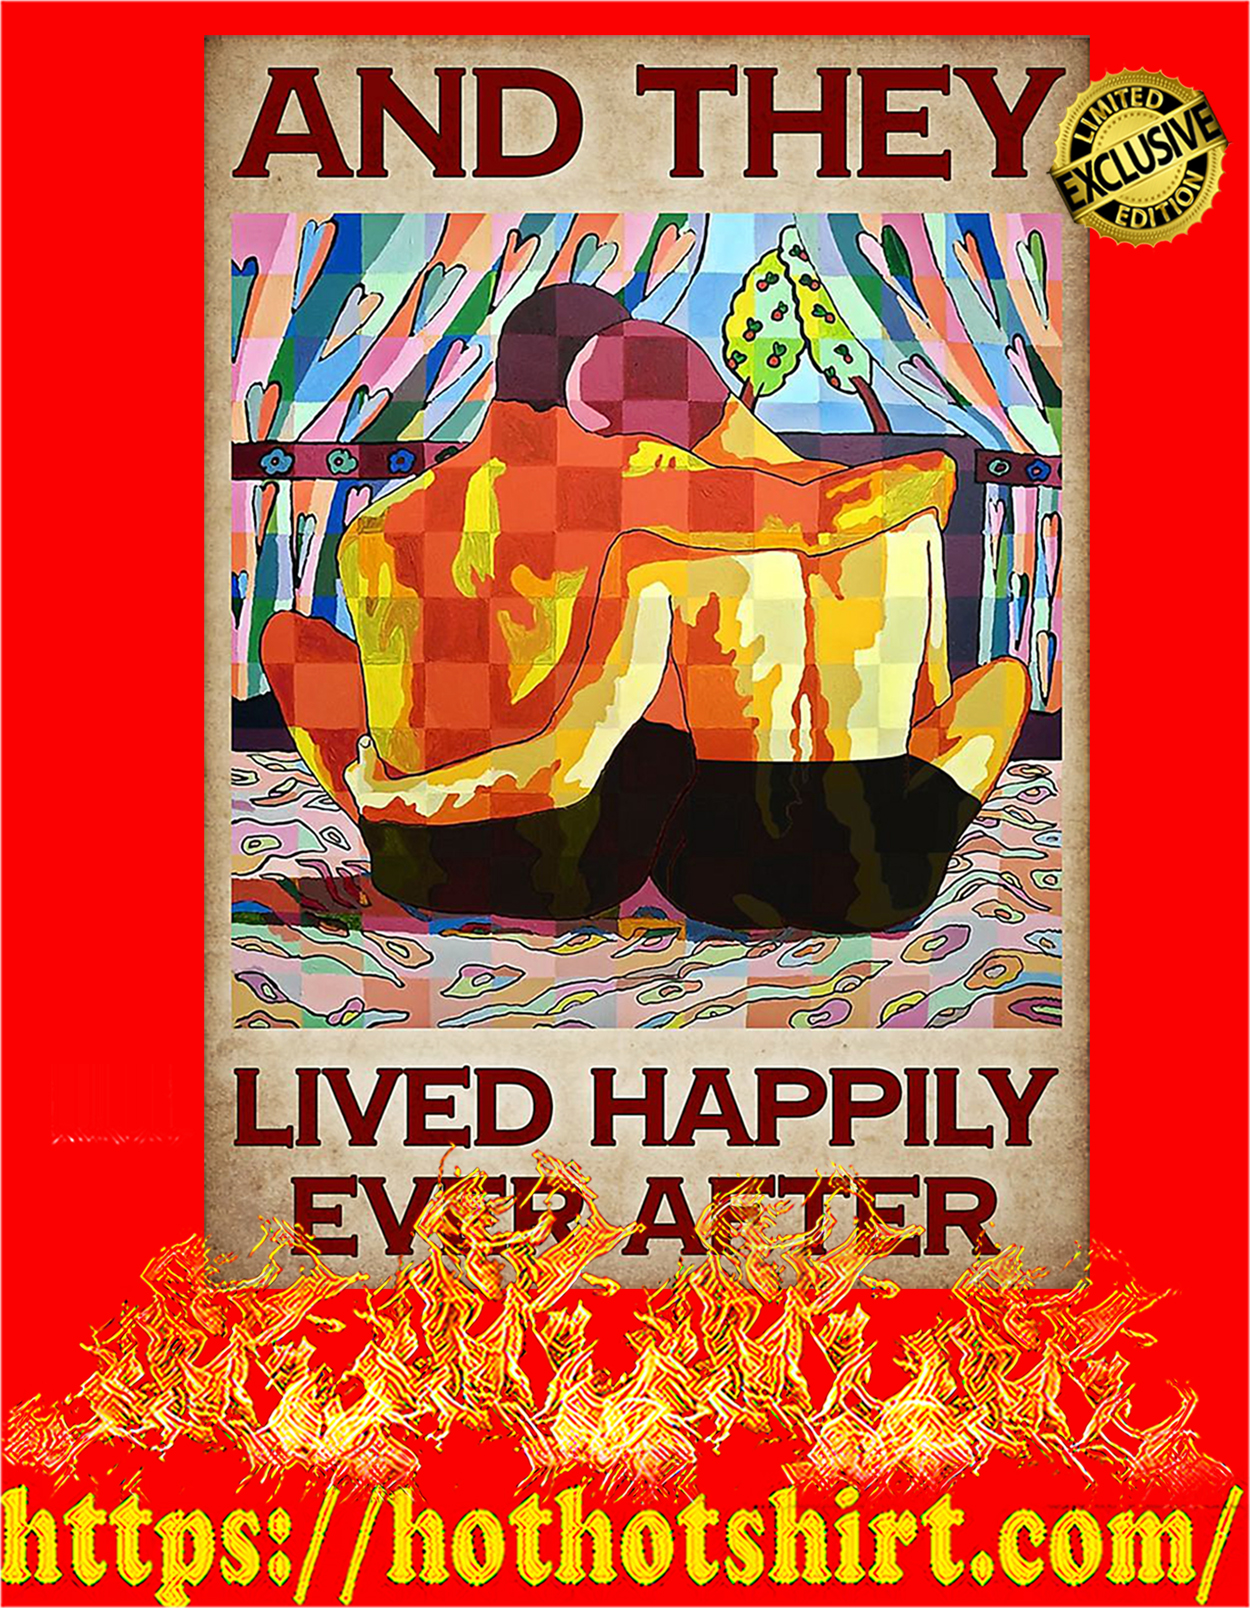 LGBT Pride And they lived happily ever after poster - A3